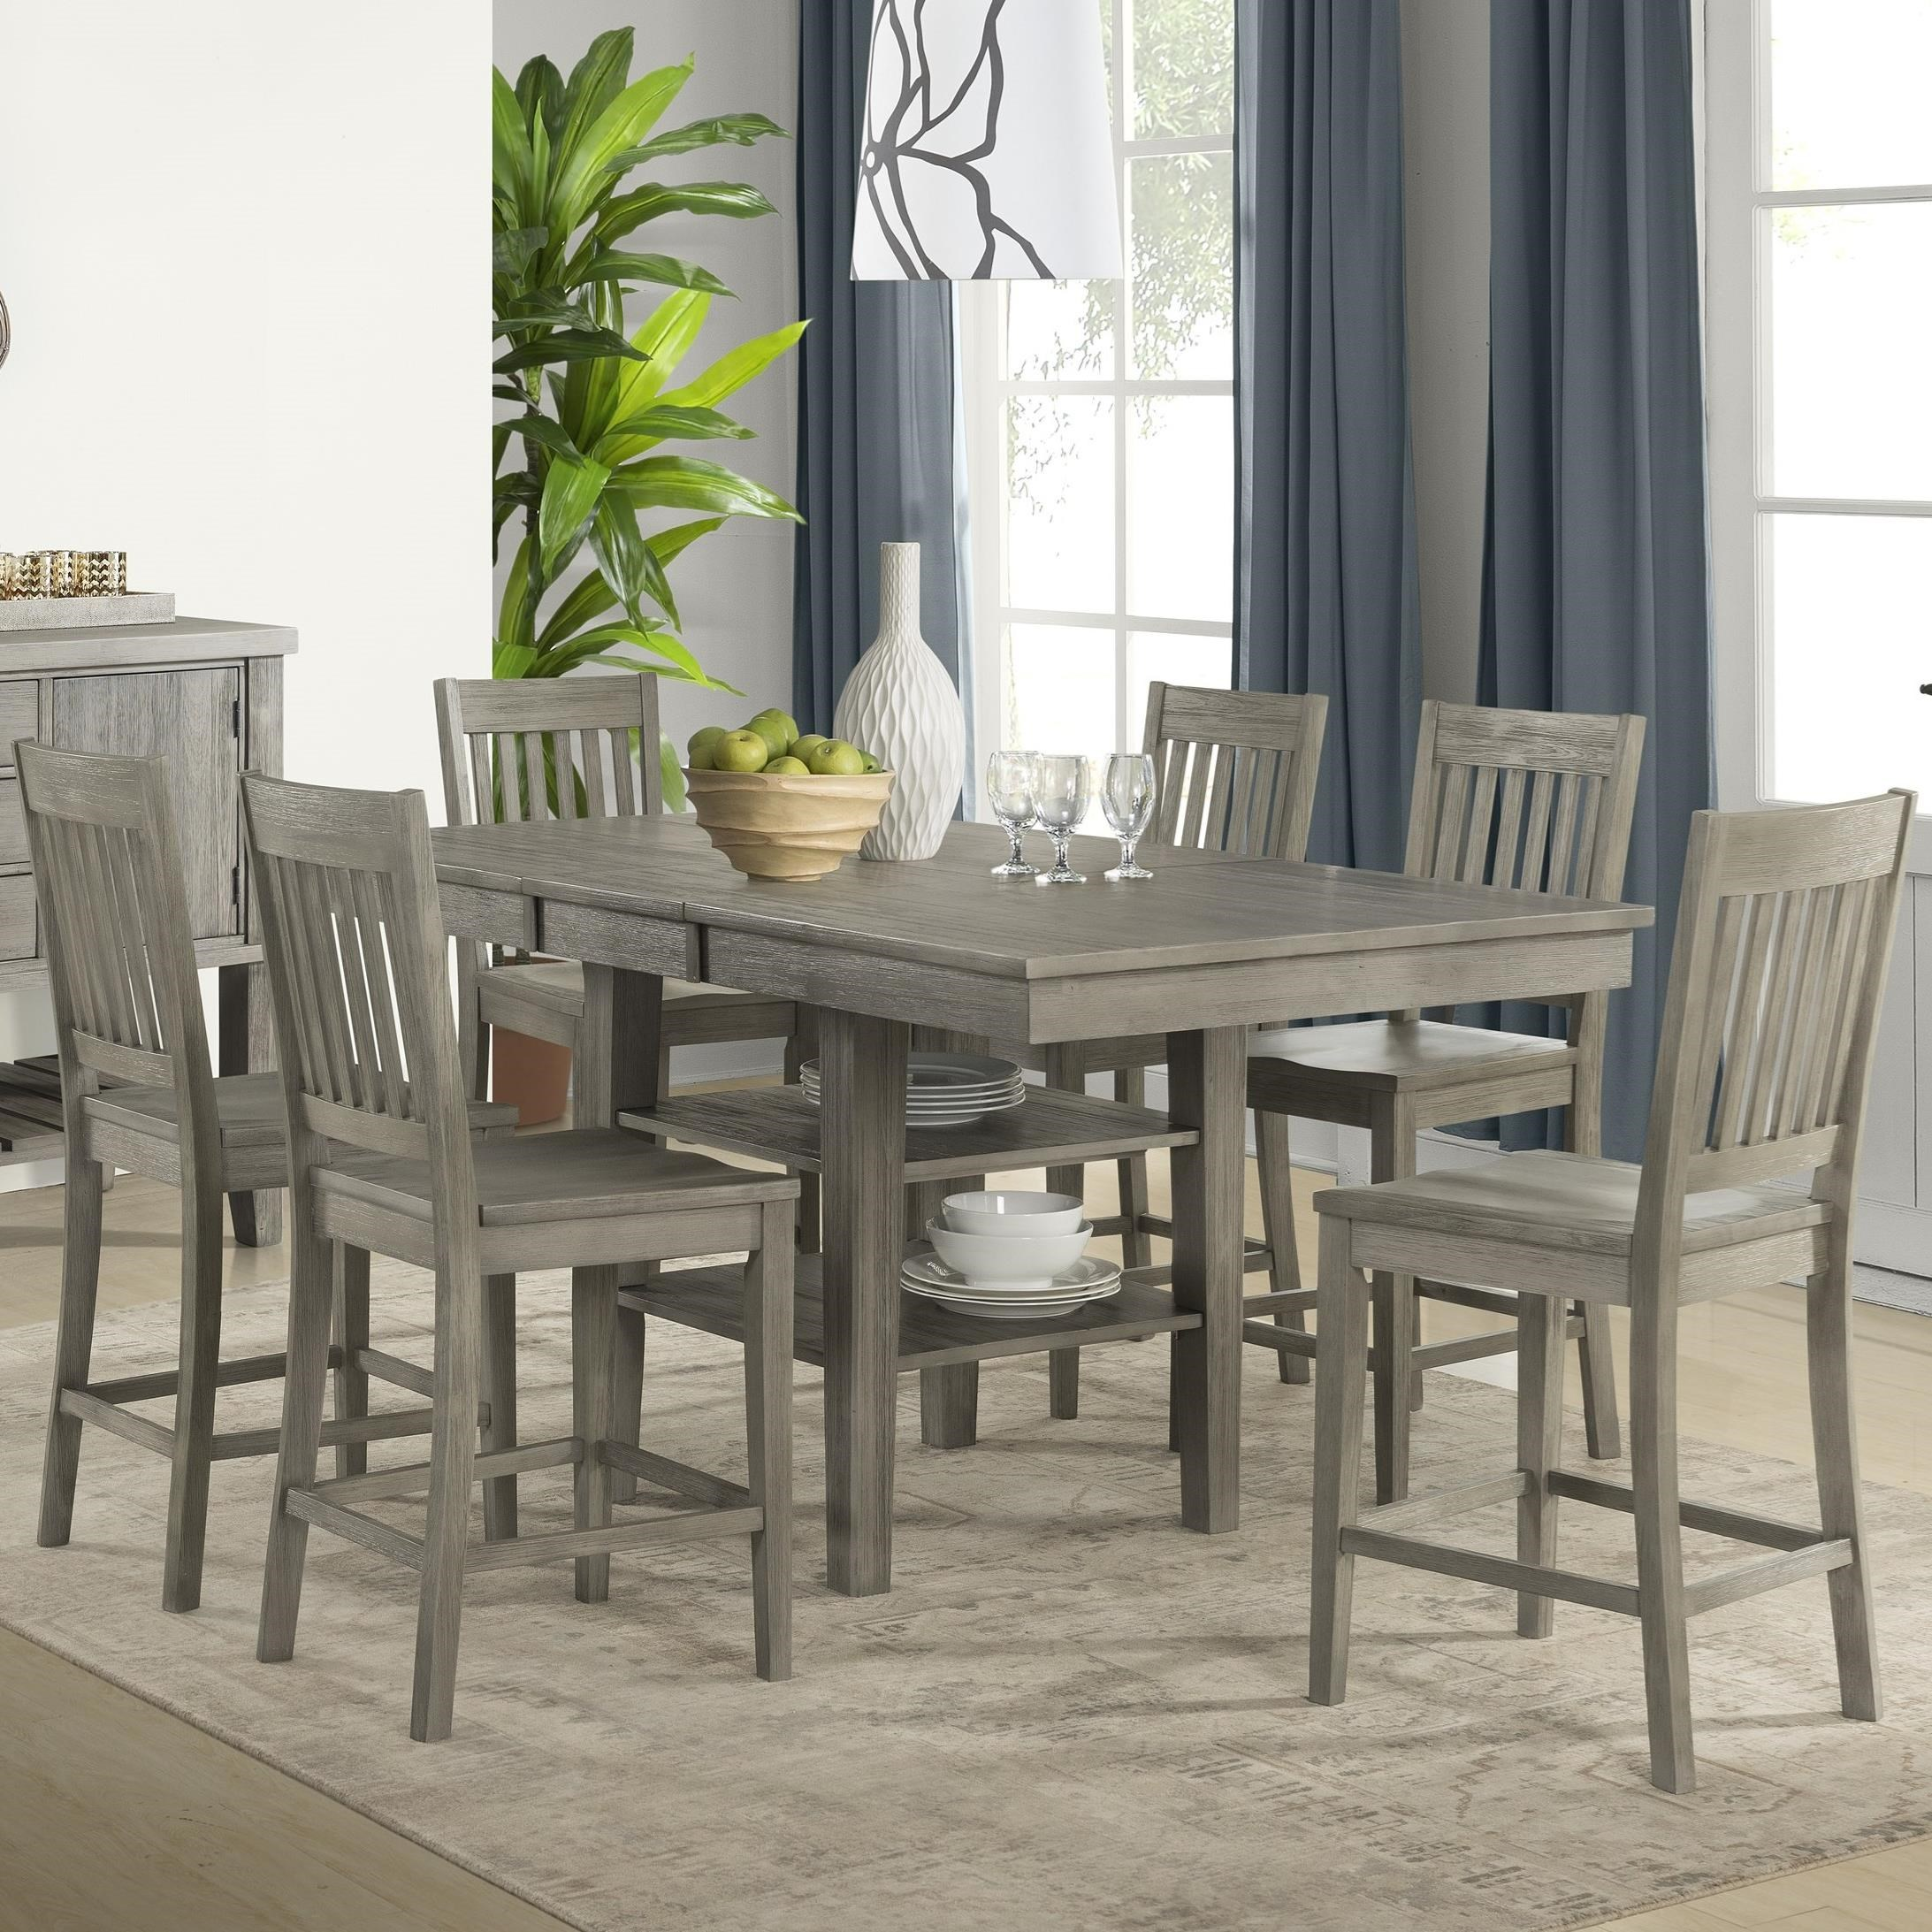 Huron Transitional Pub Table and Chair Set by AAmerica at Van Hill Furniture